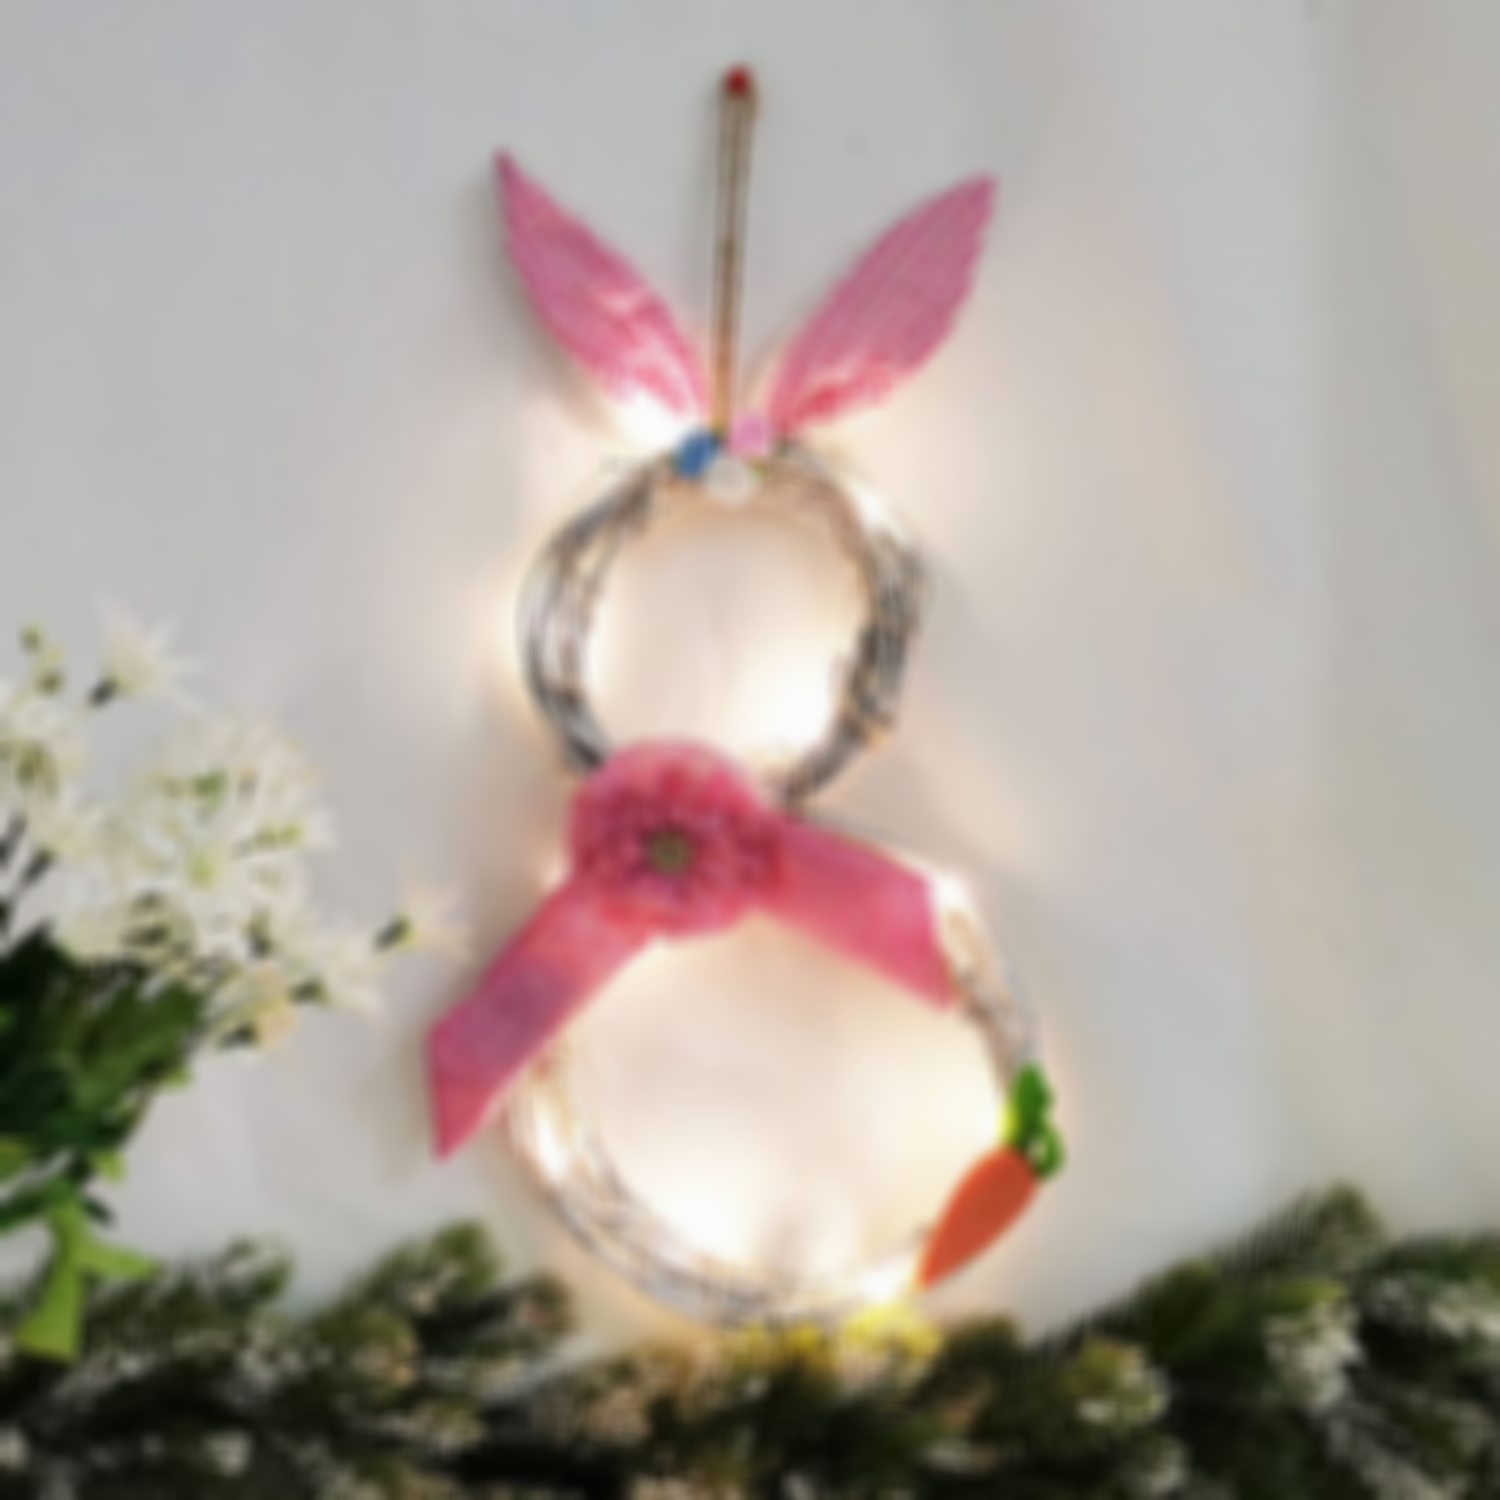 Easter Decorations With Lights Decorating Rattan Circle Wreath Ornaments Cute Bunny Shape Decorations Easter Gifts